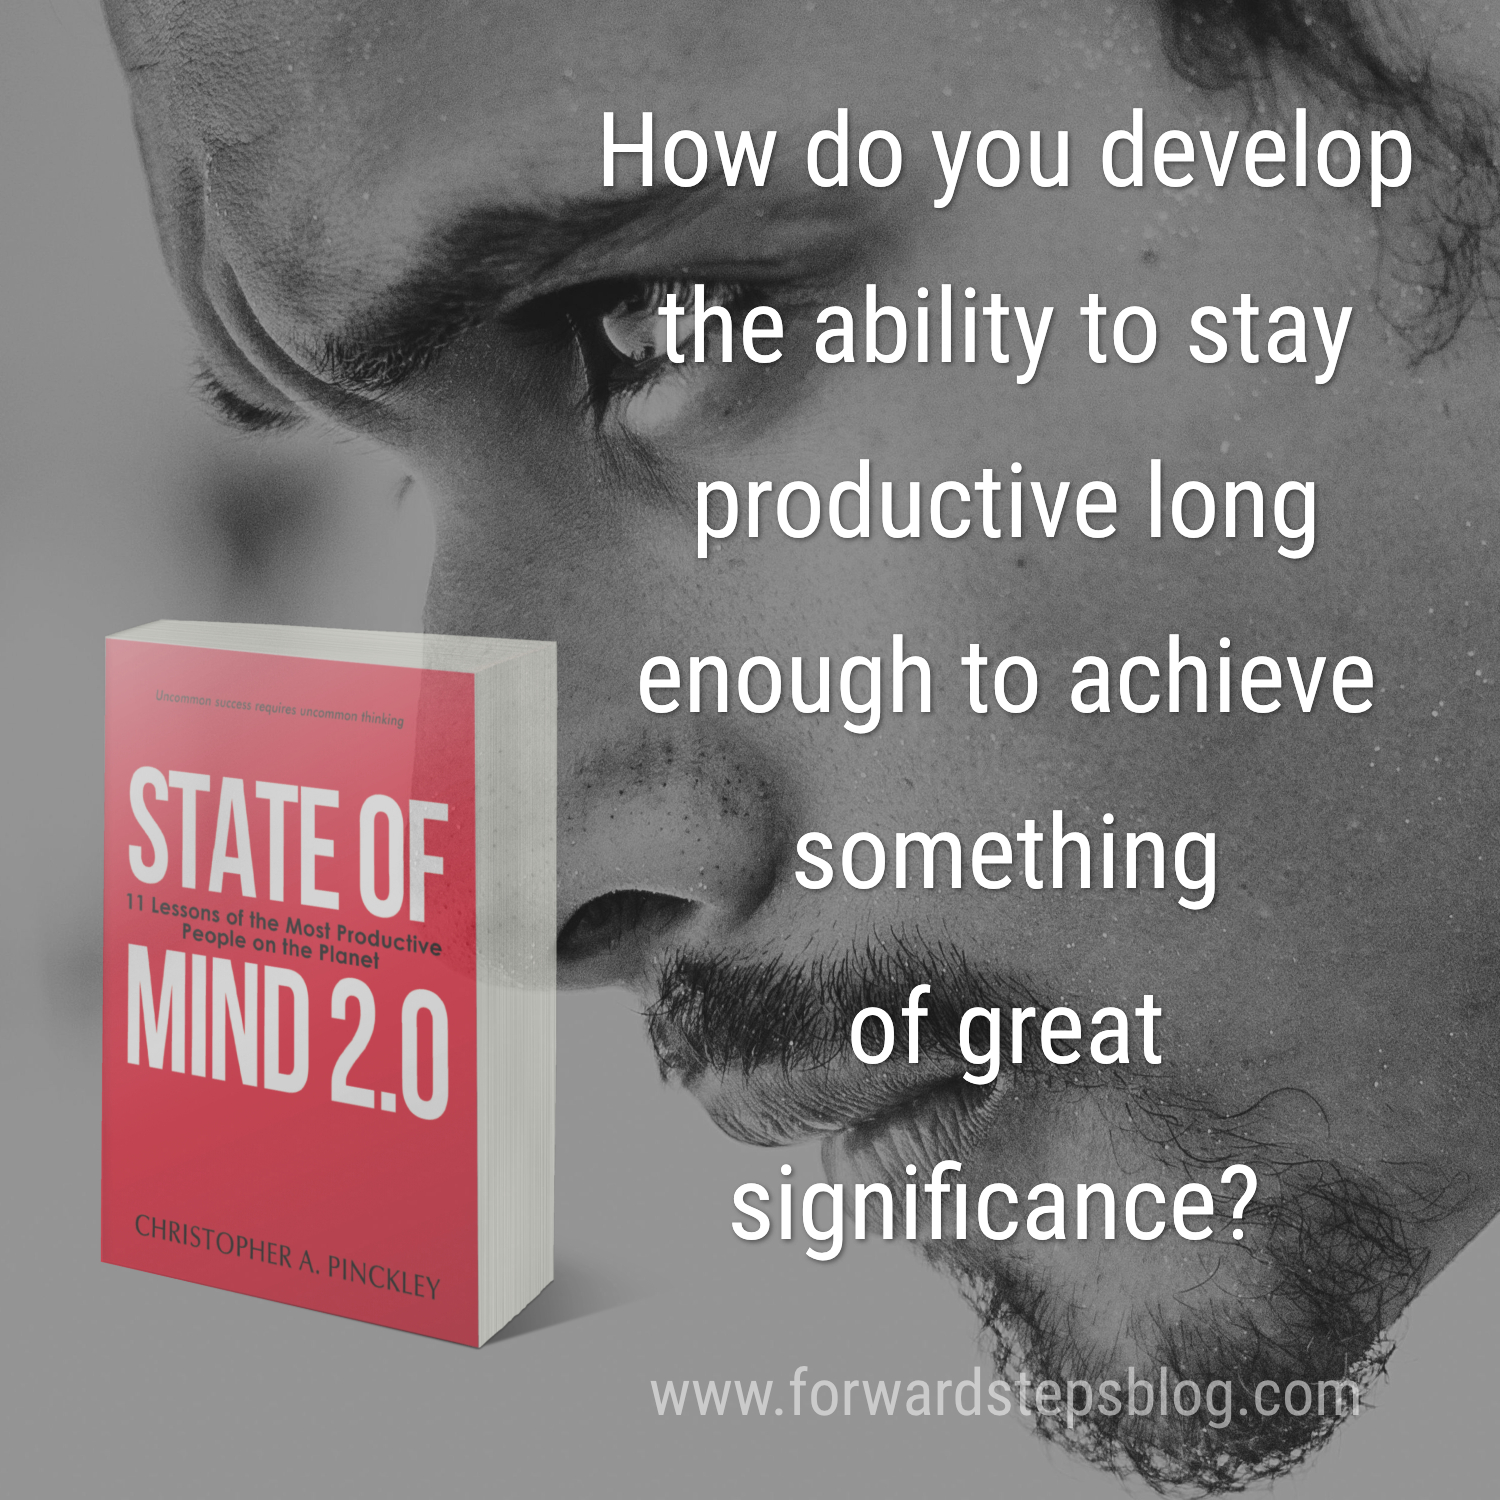 State Of Mind 2.0 Free eBook Download